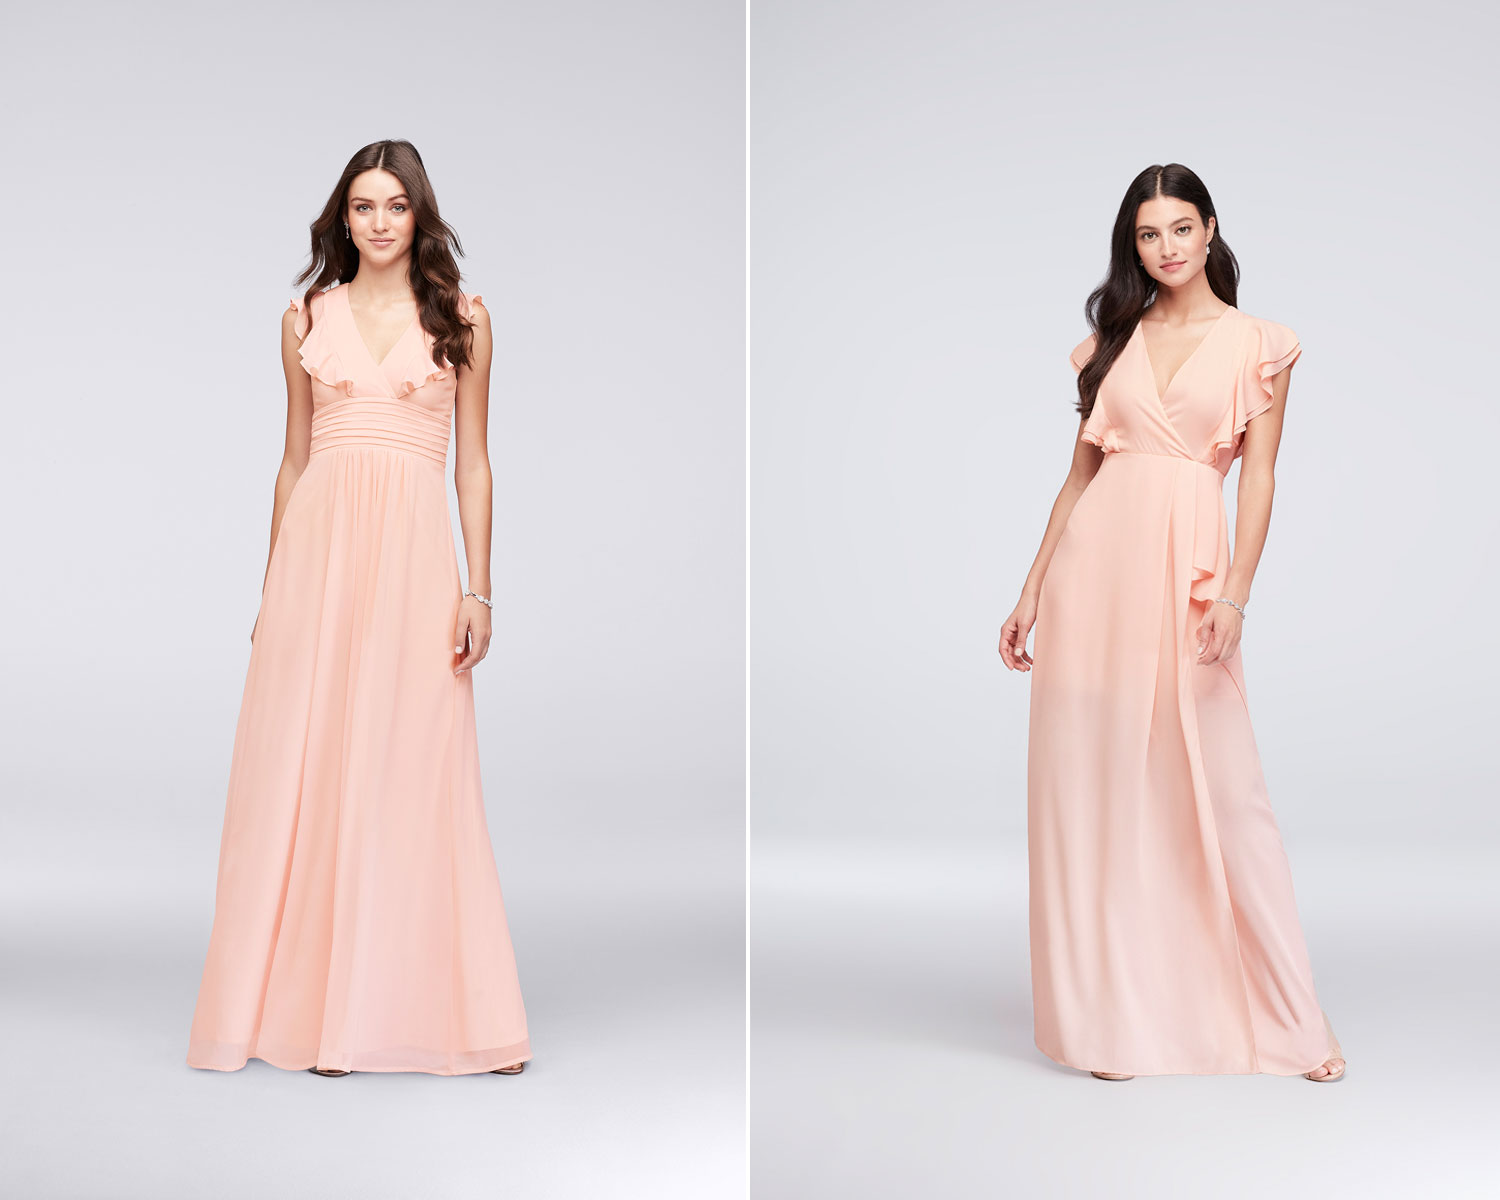 David's Bridal To Release Bridesmaid Dresses For Under $100